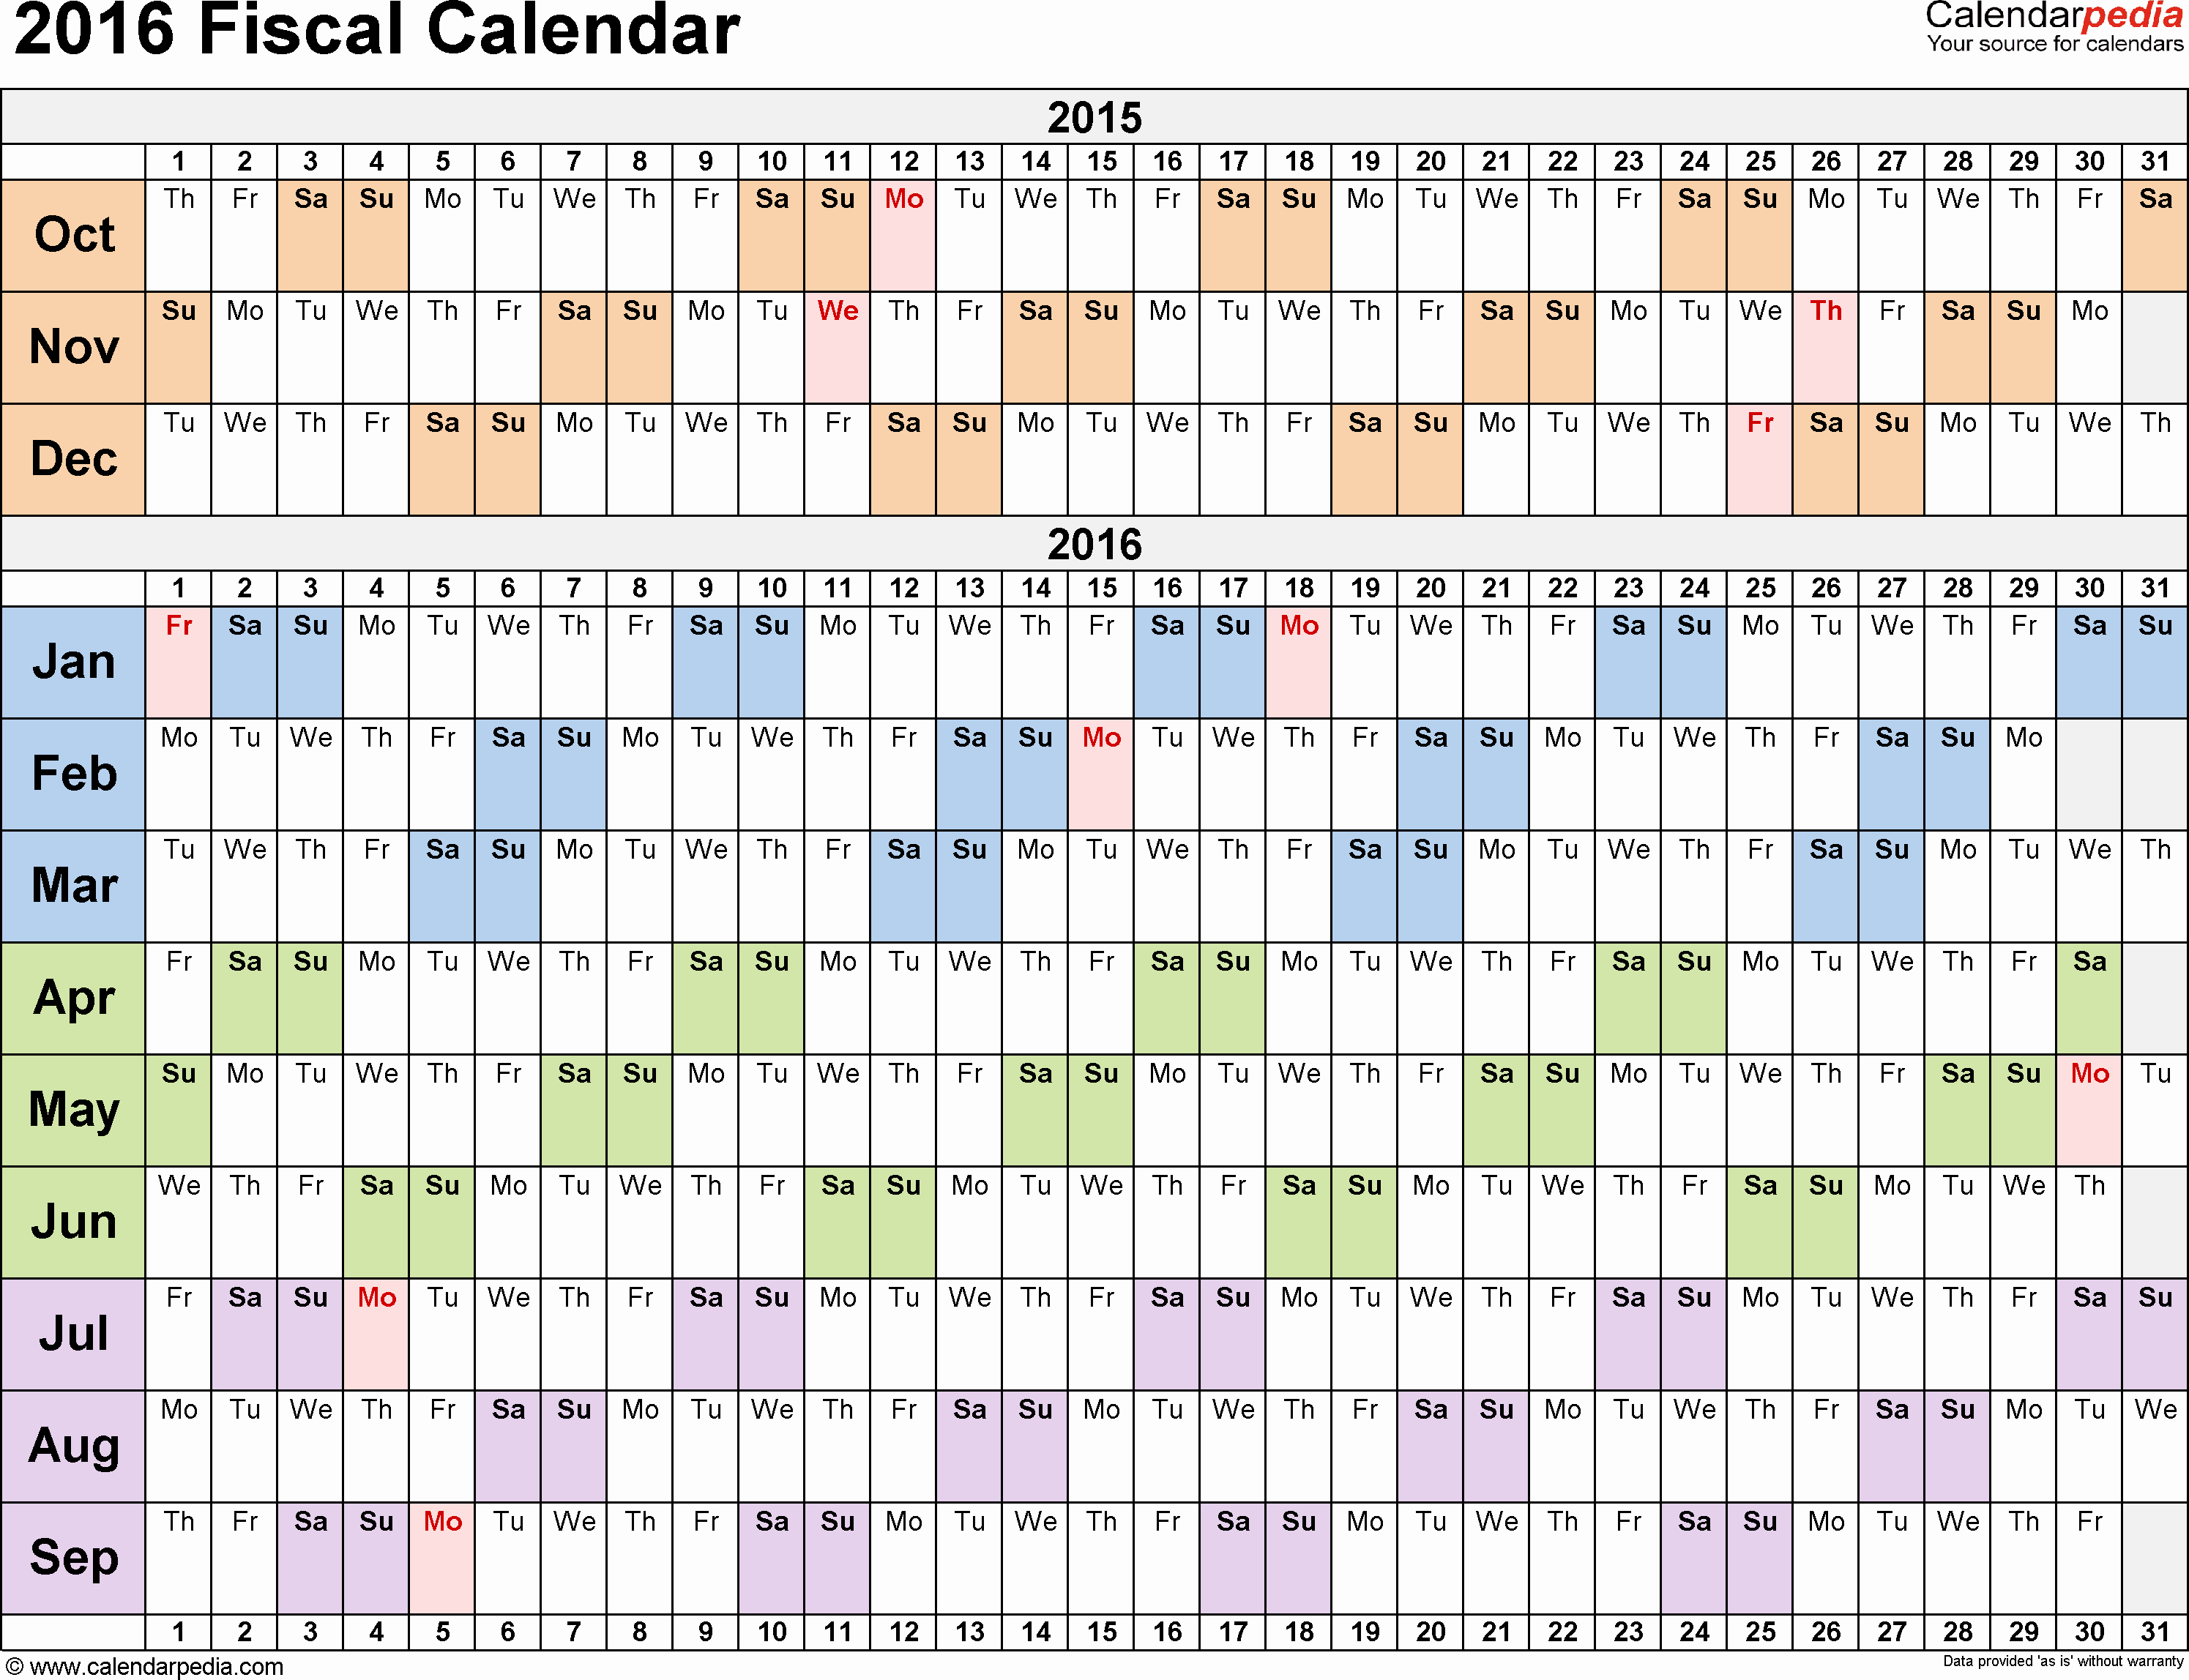 Fiscal Year Calendar 2016 Template Lovely Fiscal Calendars 2016 as Free Printable Pdf Templates